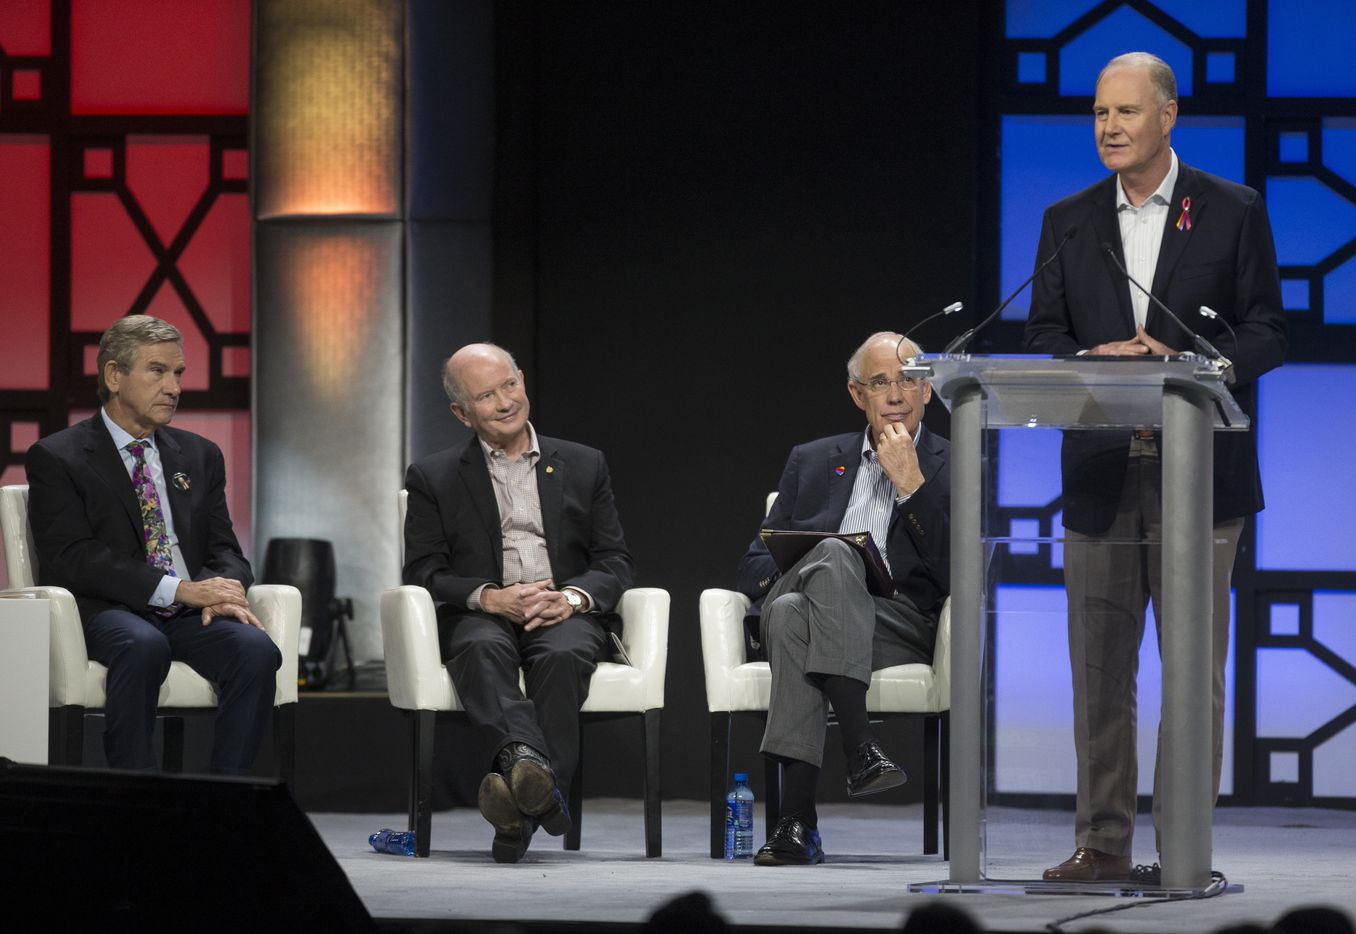 Southwest Airlines Chairman and CEO Gary Kelly, right, speaks as Presiding Director Bill Cunningham, second from right, Retired United States Air Force General Duncan McNabb (2nd left), and Craig Hall (far left) listen during a celebration of life event for Southwest Airlines Co-Founder Herb Kelleher on Tuesday, Jan. 22, 2019 at the Kay Bailey Hutchison Convention Center in Dallas.